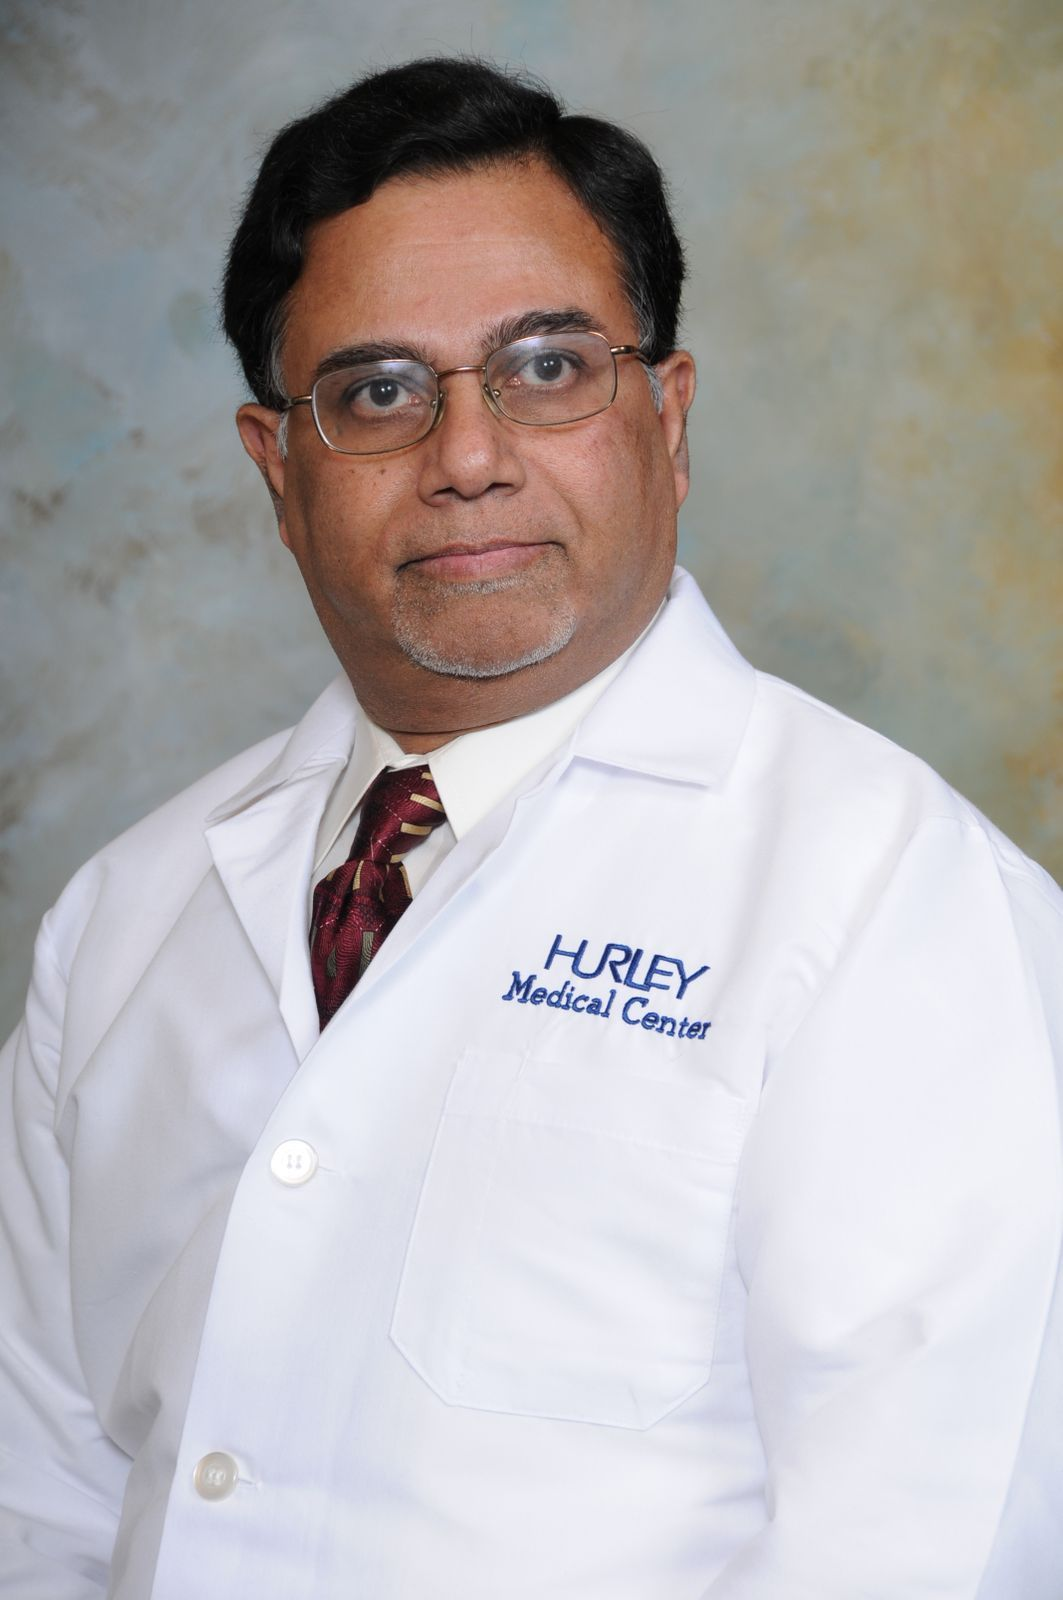 Mohammed Syed, MD